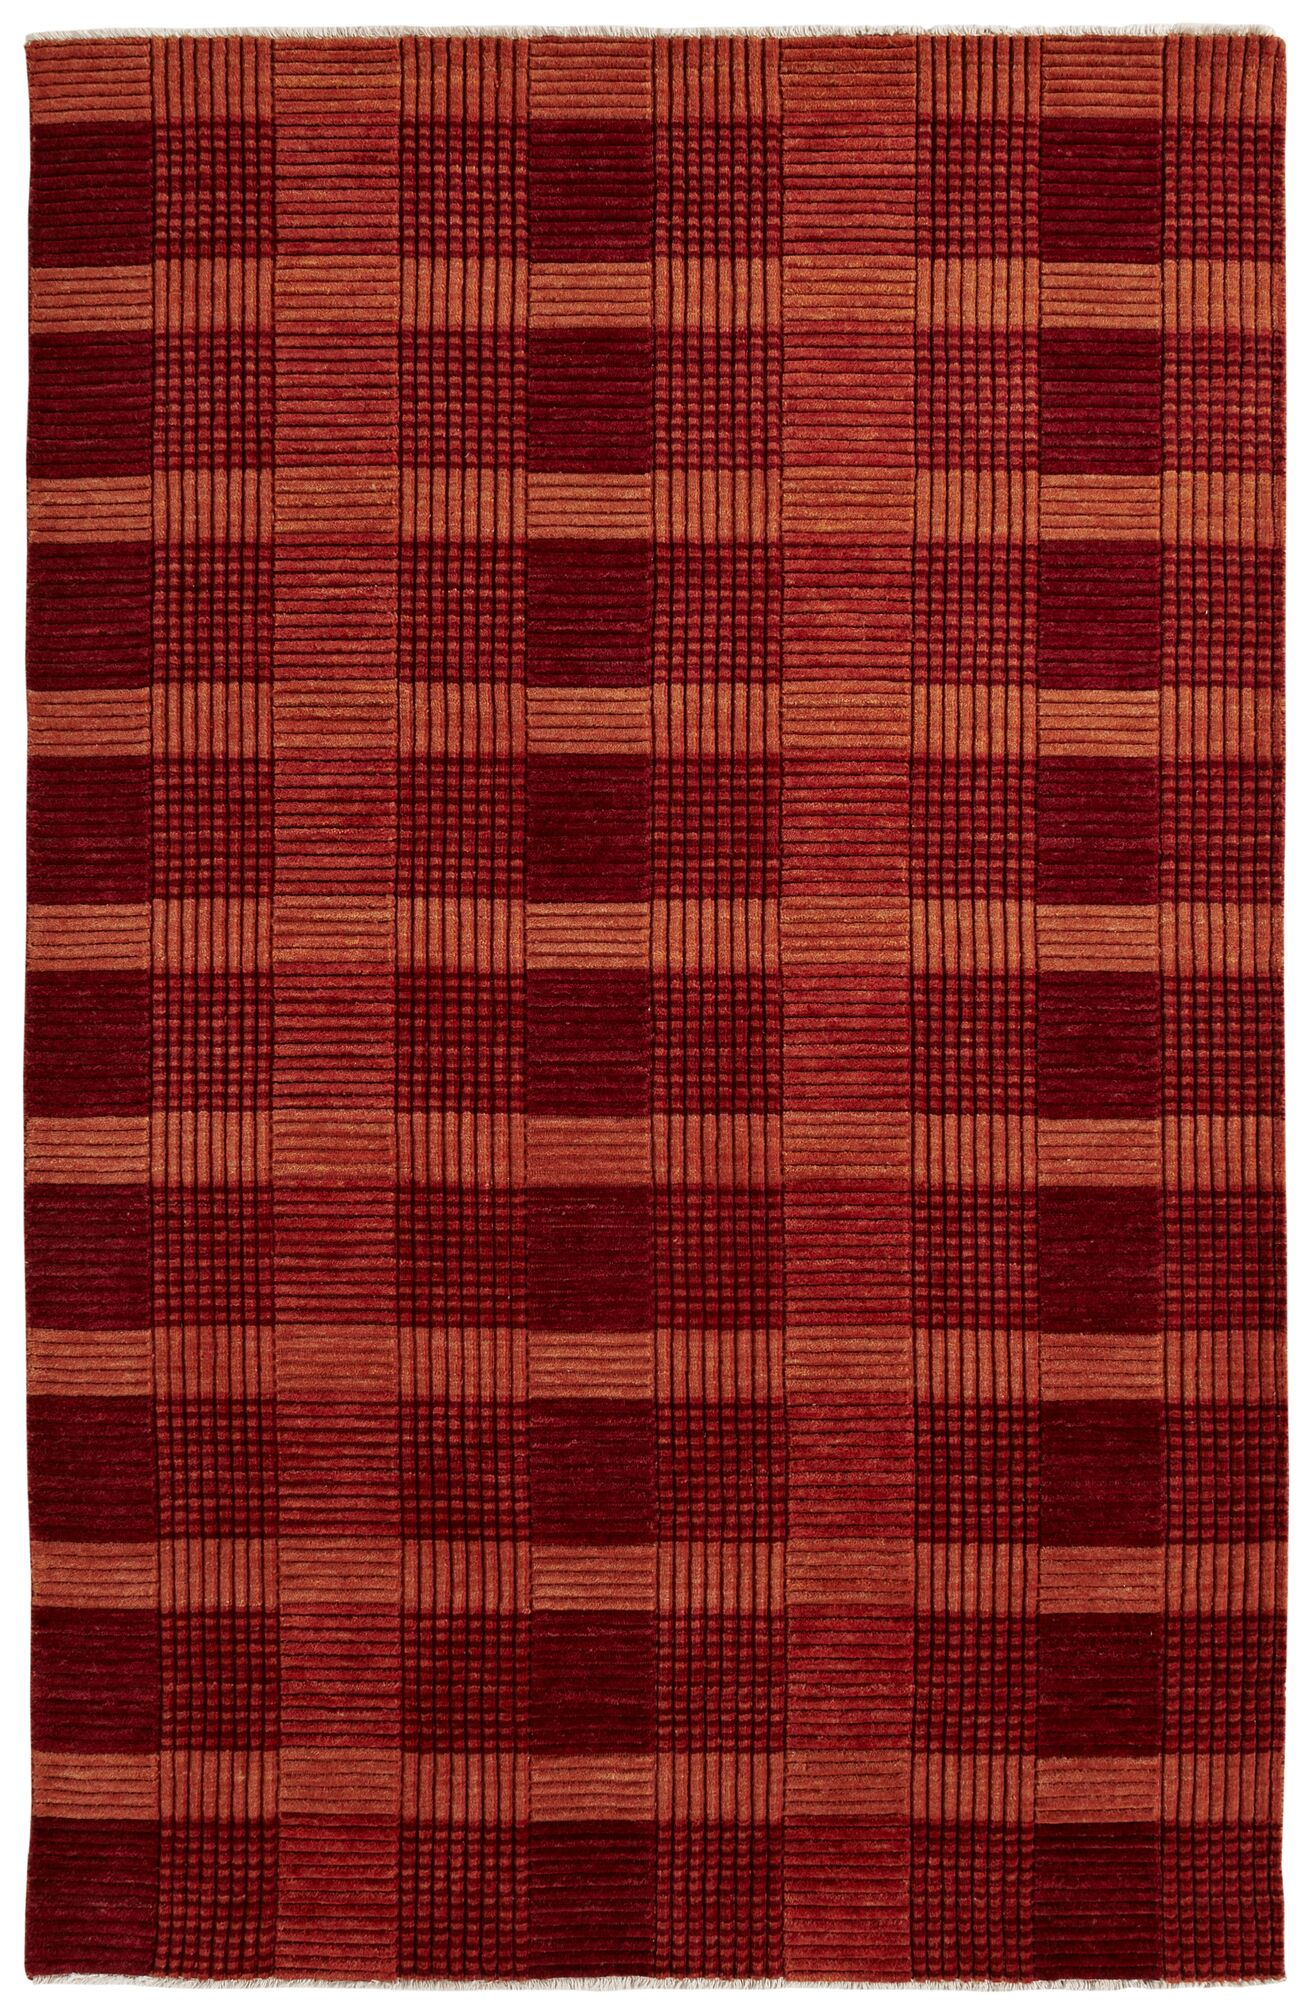 Lounge Red Area Rug Rug Size: Rectangle 2' x 4'